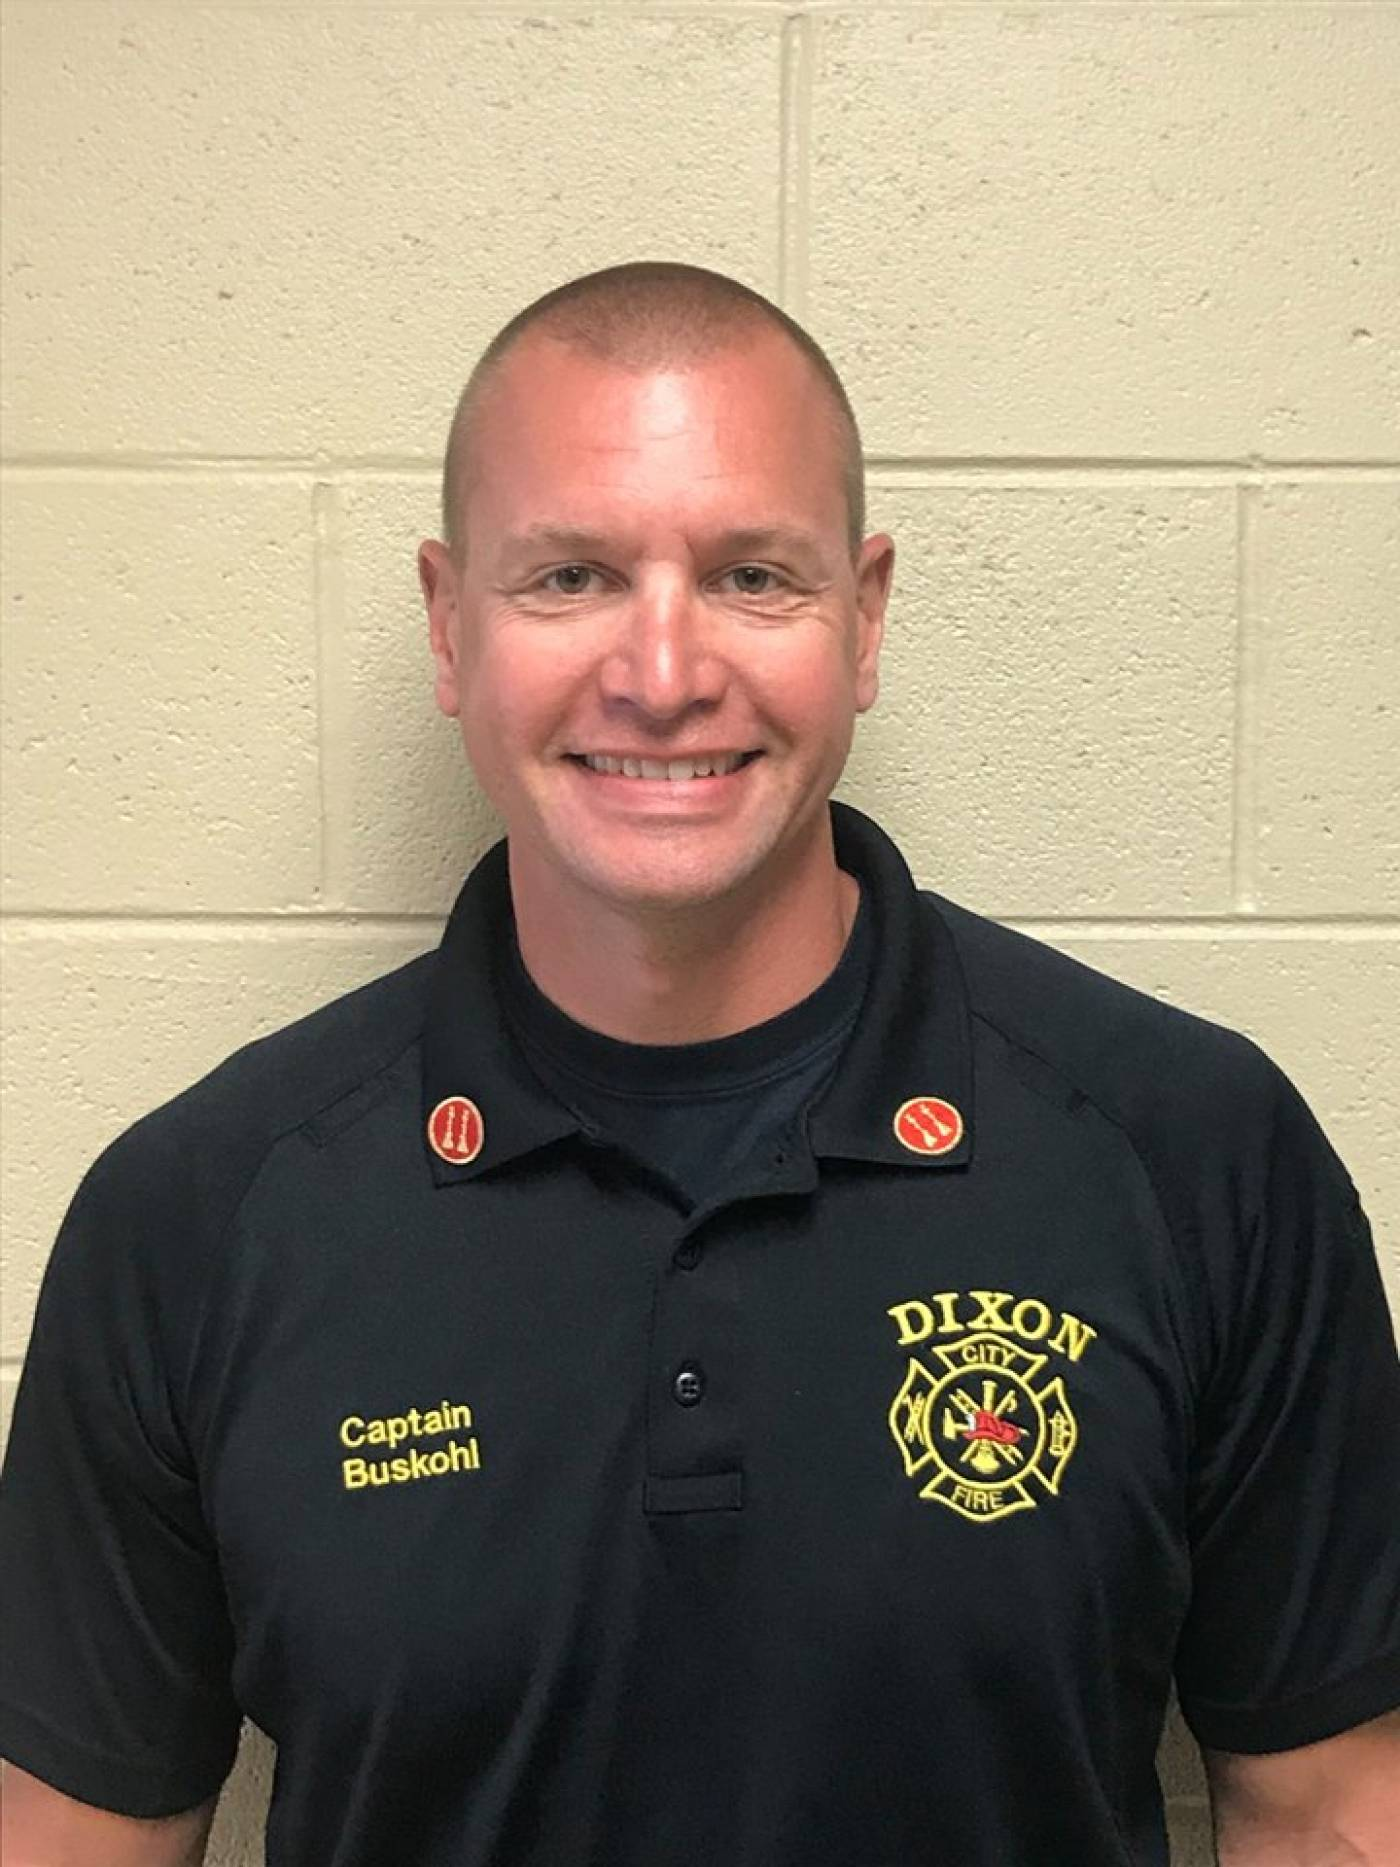 Fire Captain Ryan Buskohl named next Dixon Fire Chief